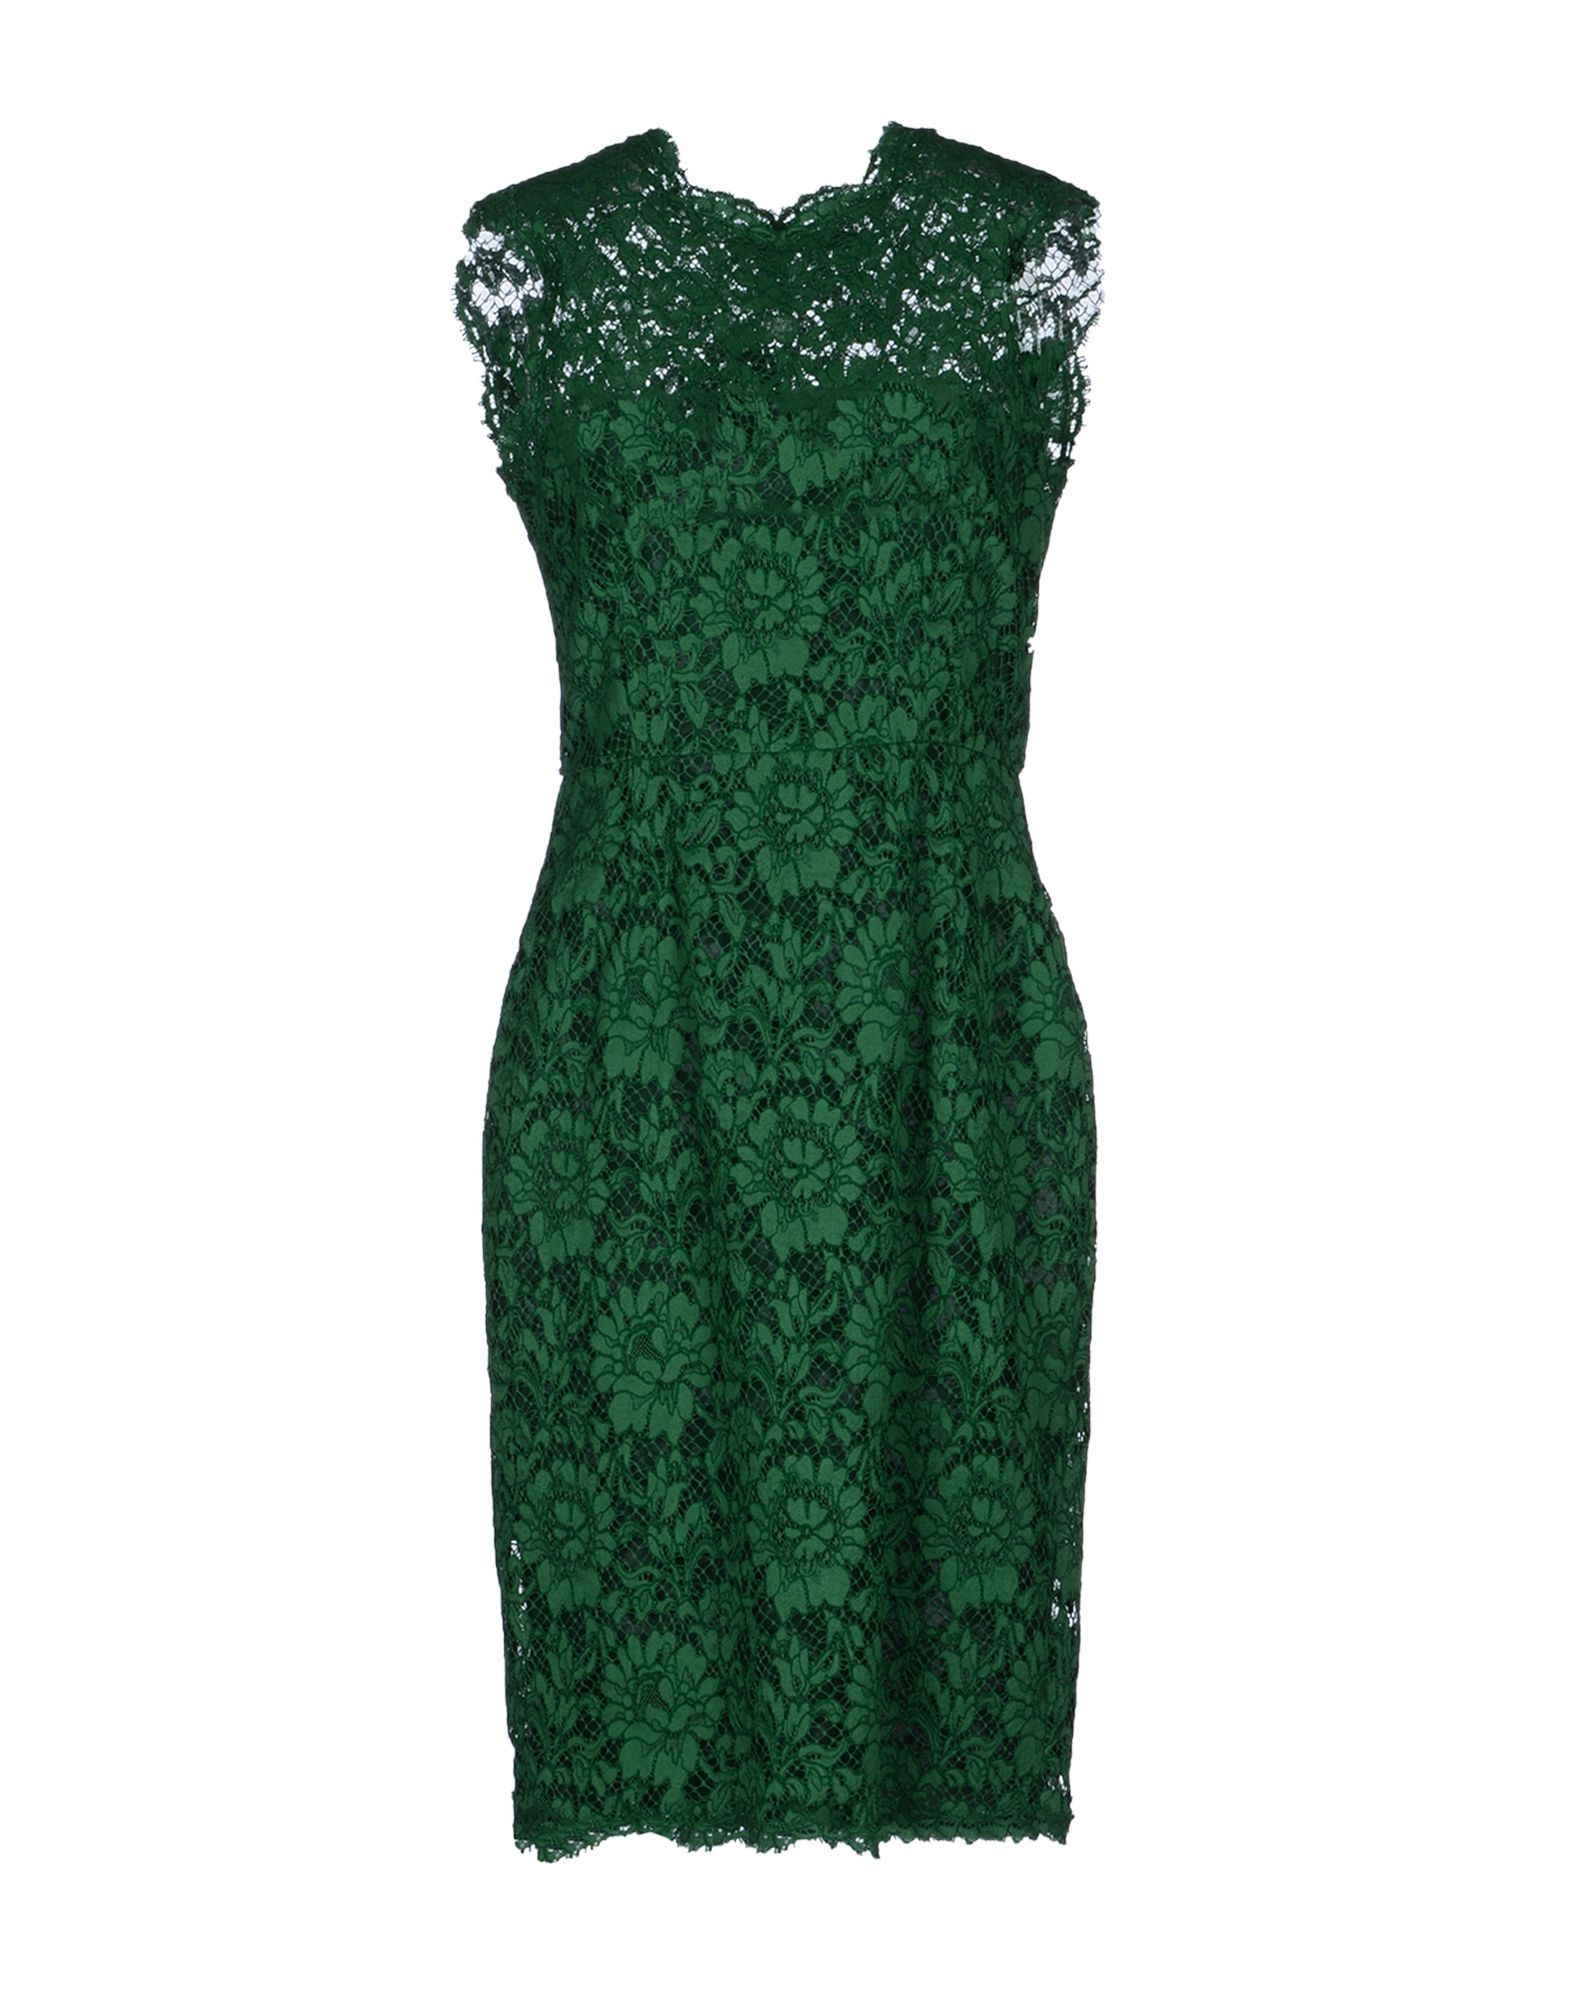 Valentino Kneelength Dress in Green